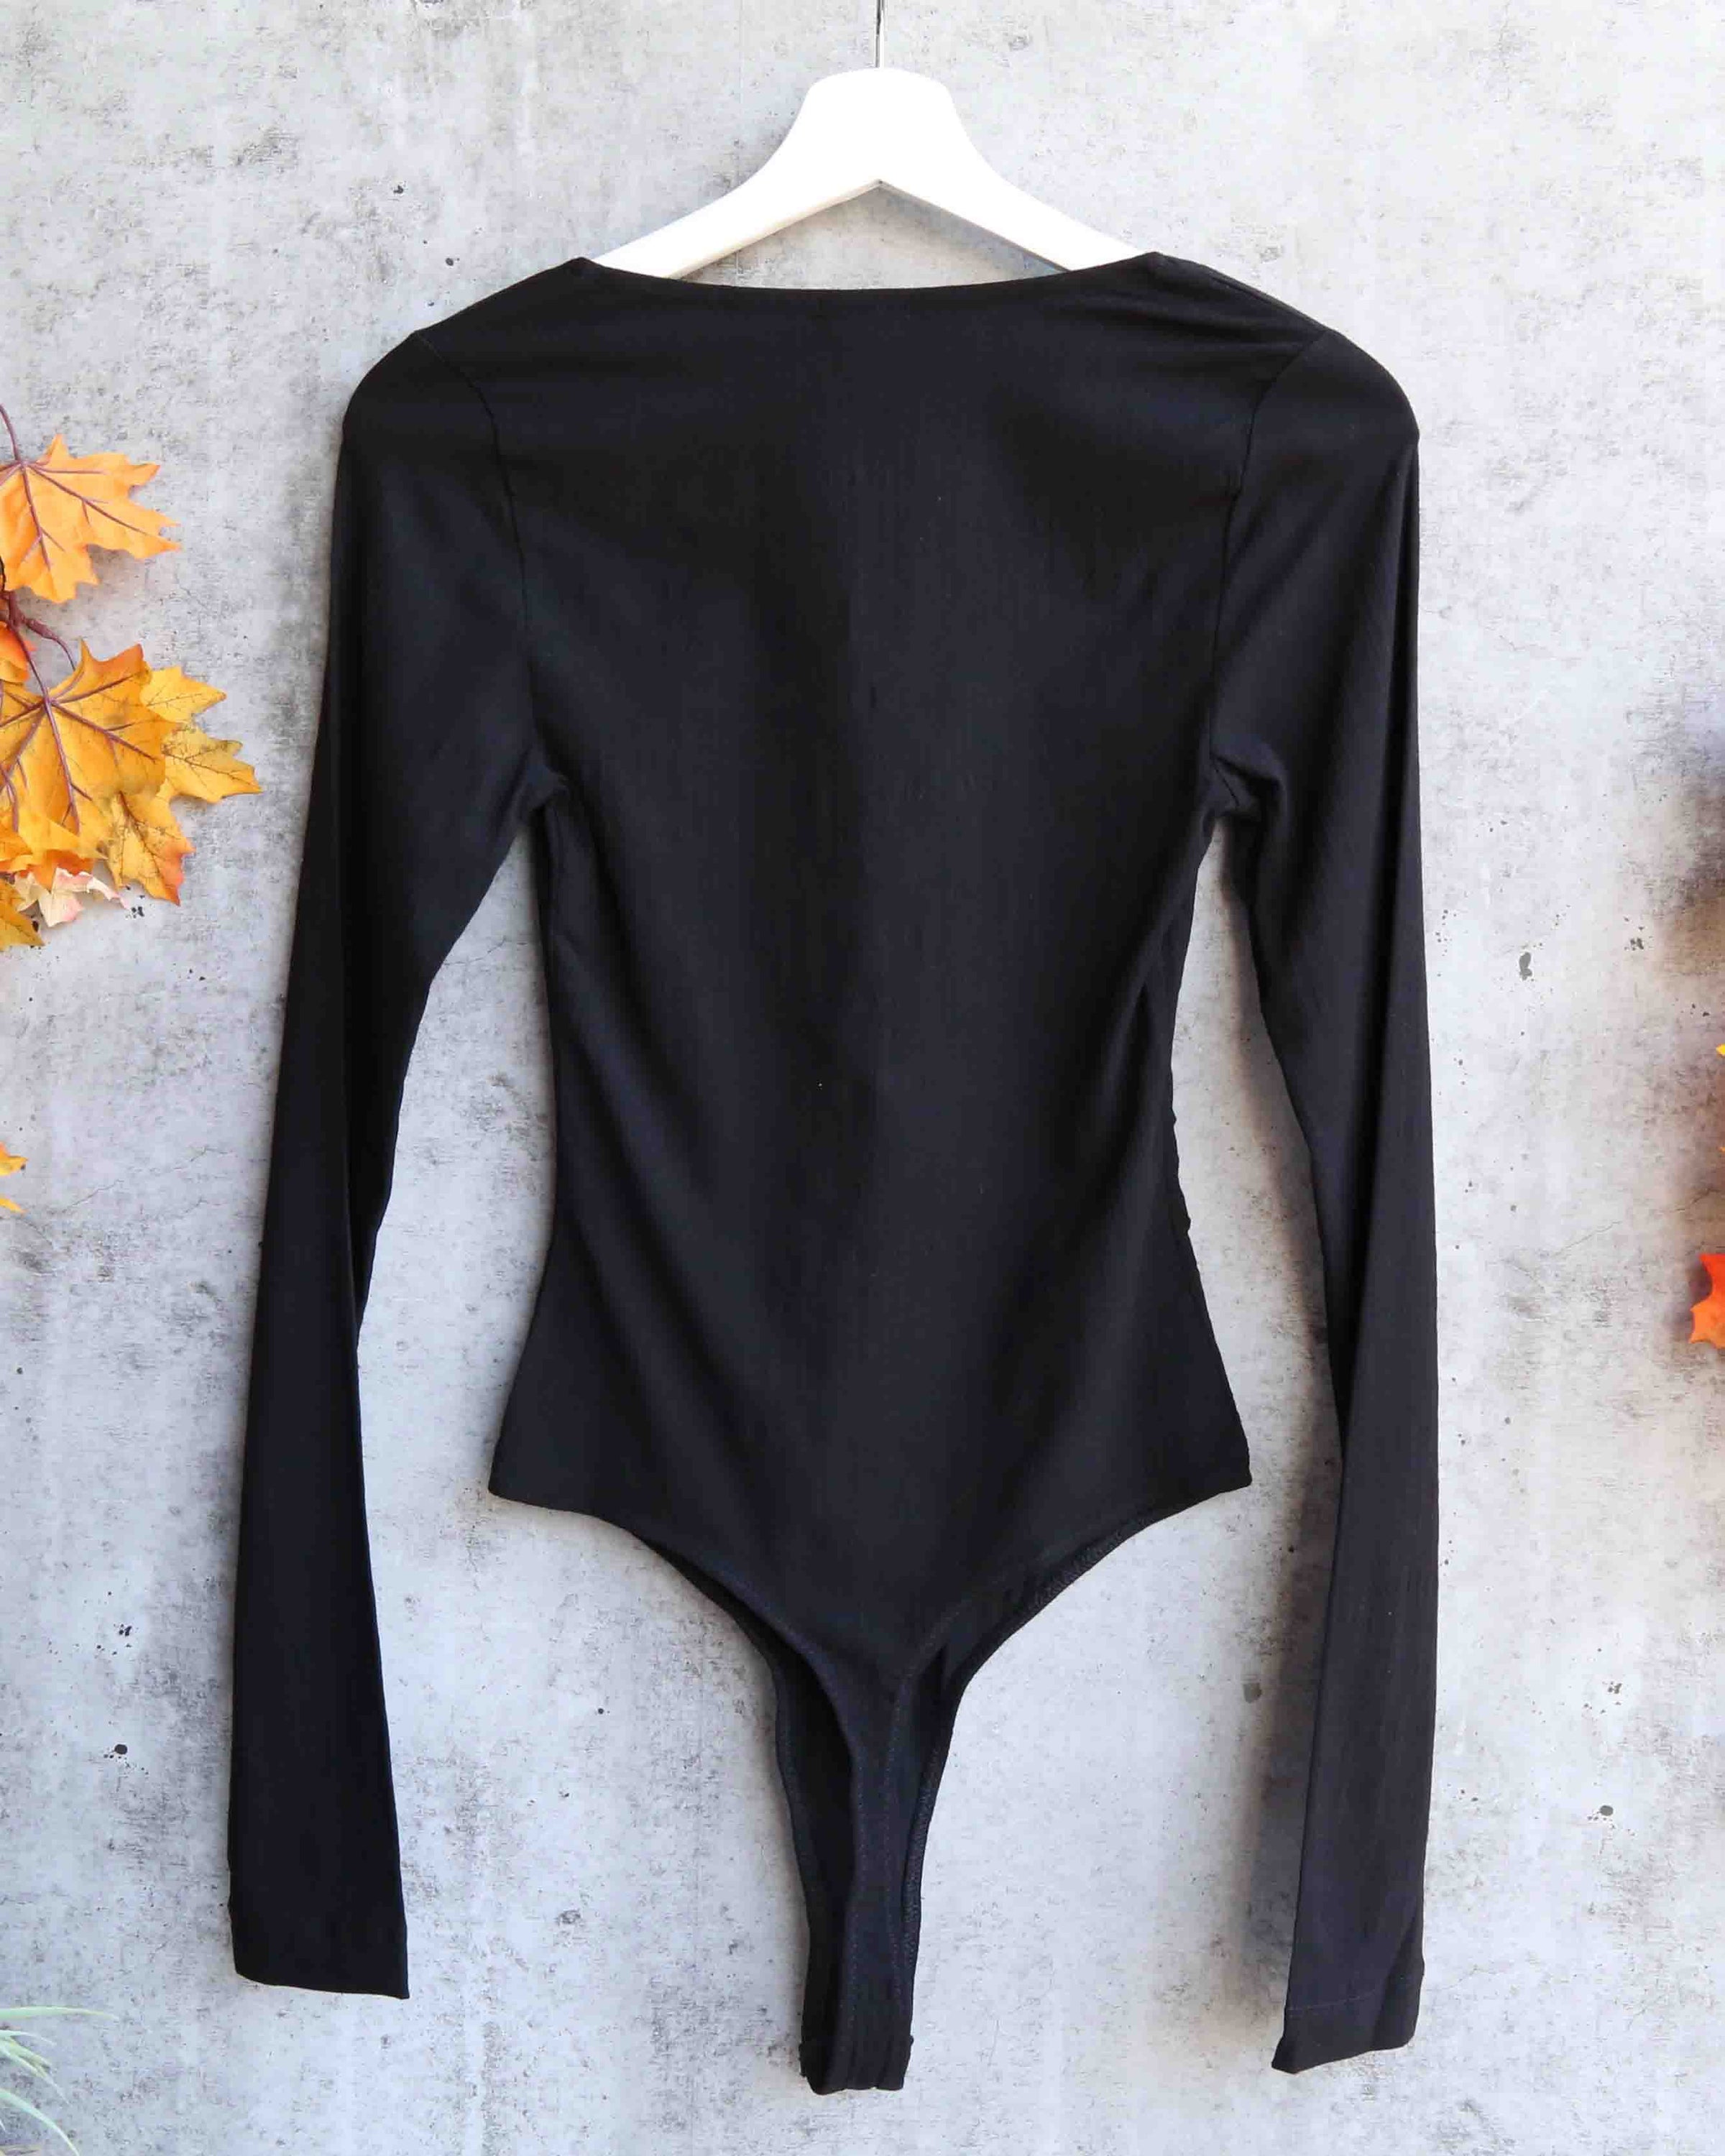 737b292dba Free People - Zoe Long-Sleeve Thong Bodysuit - Black